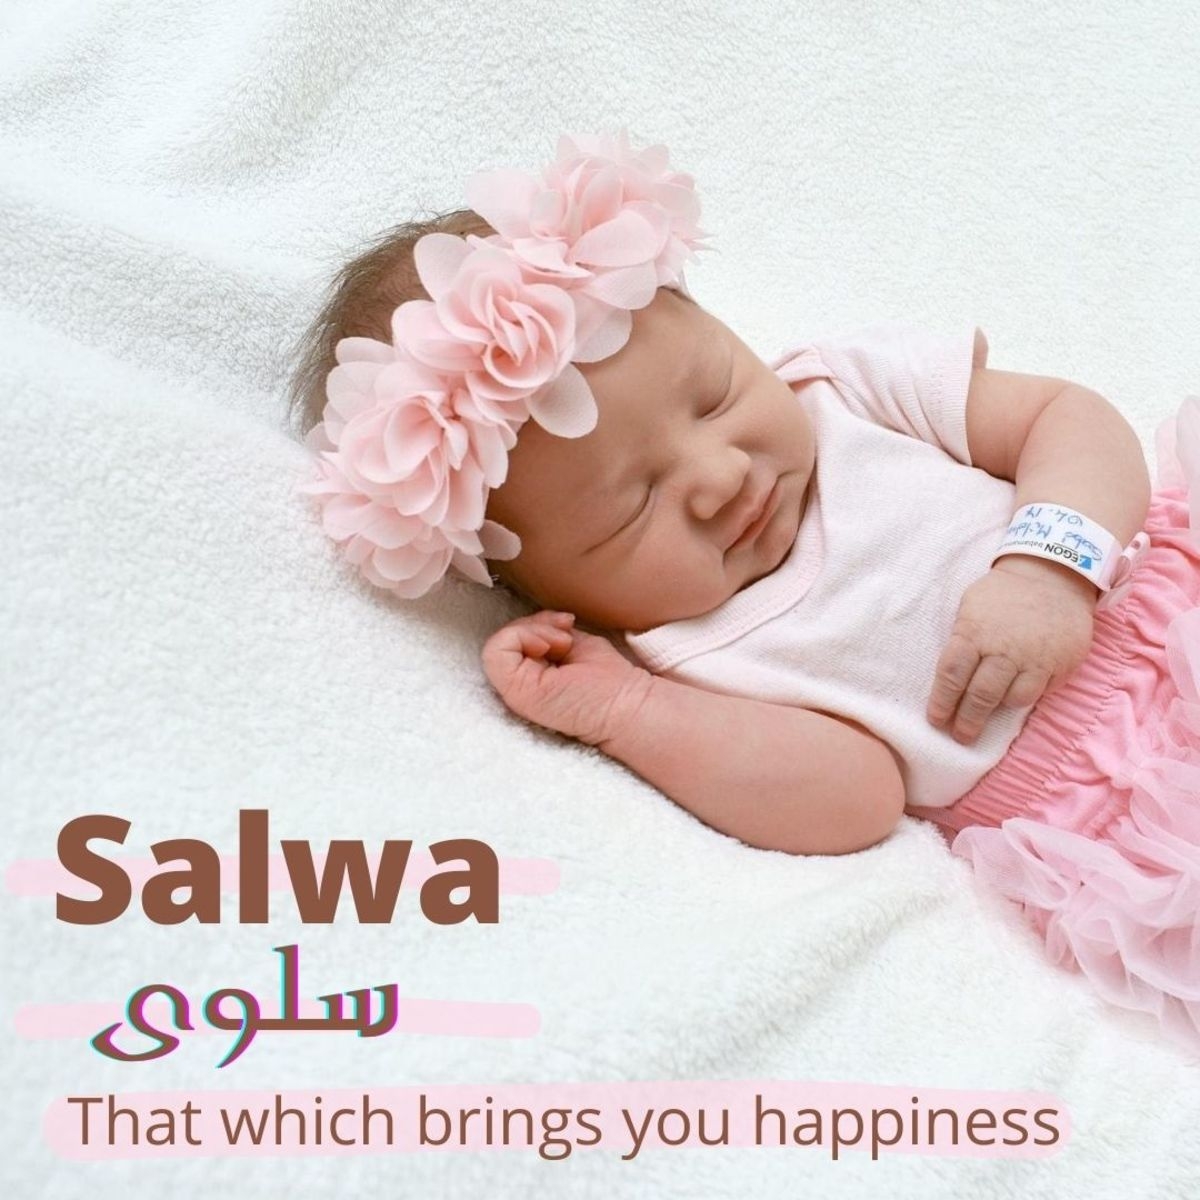 Salwa is a beautiful name taken directly from the Qur'an.